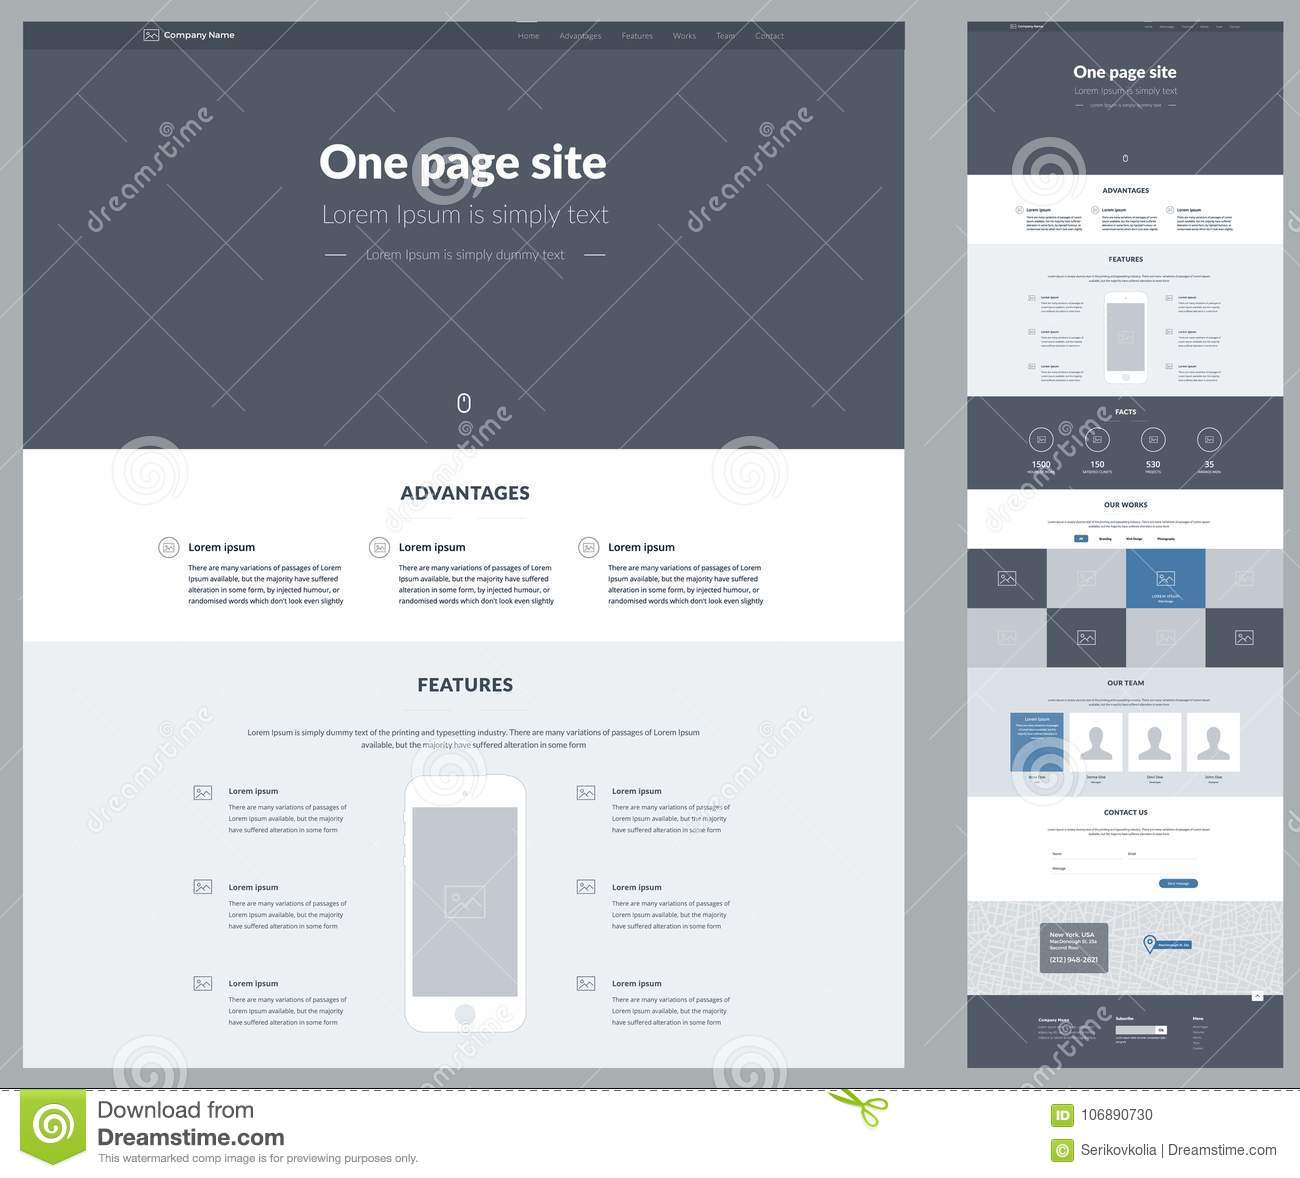 One page website design template for your business. Landing page wireframe. Ux ui website design. Flat modern responsive design il